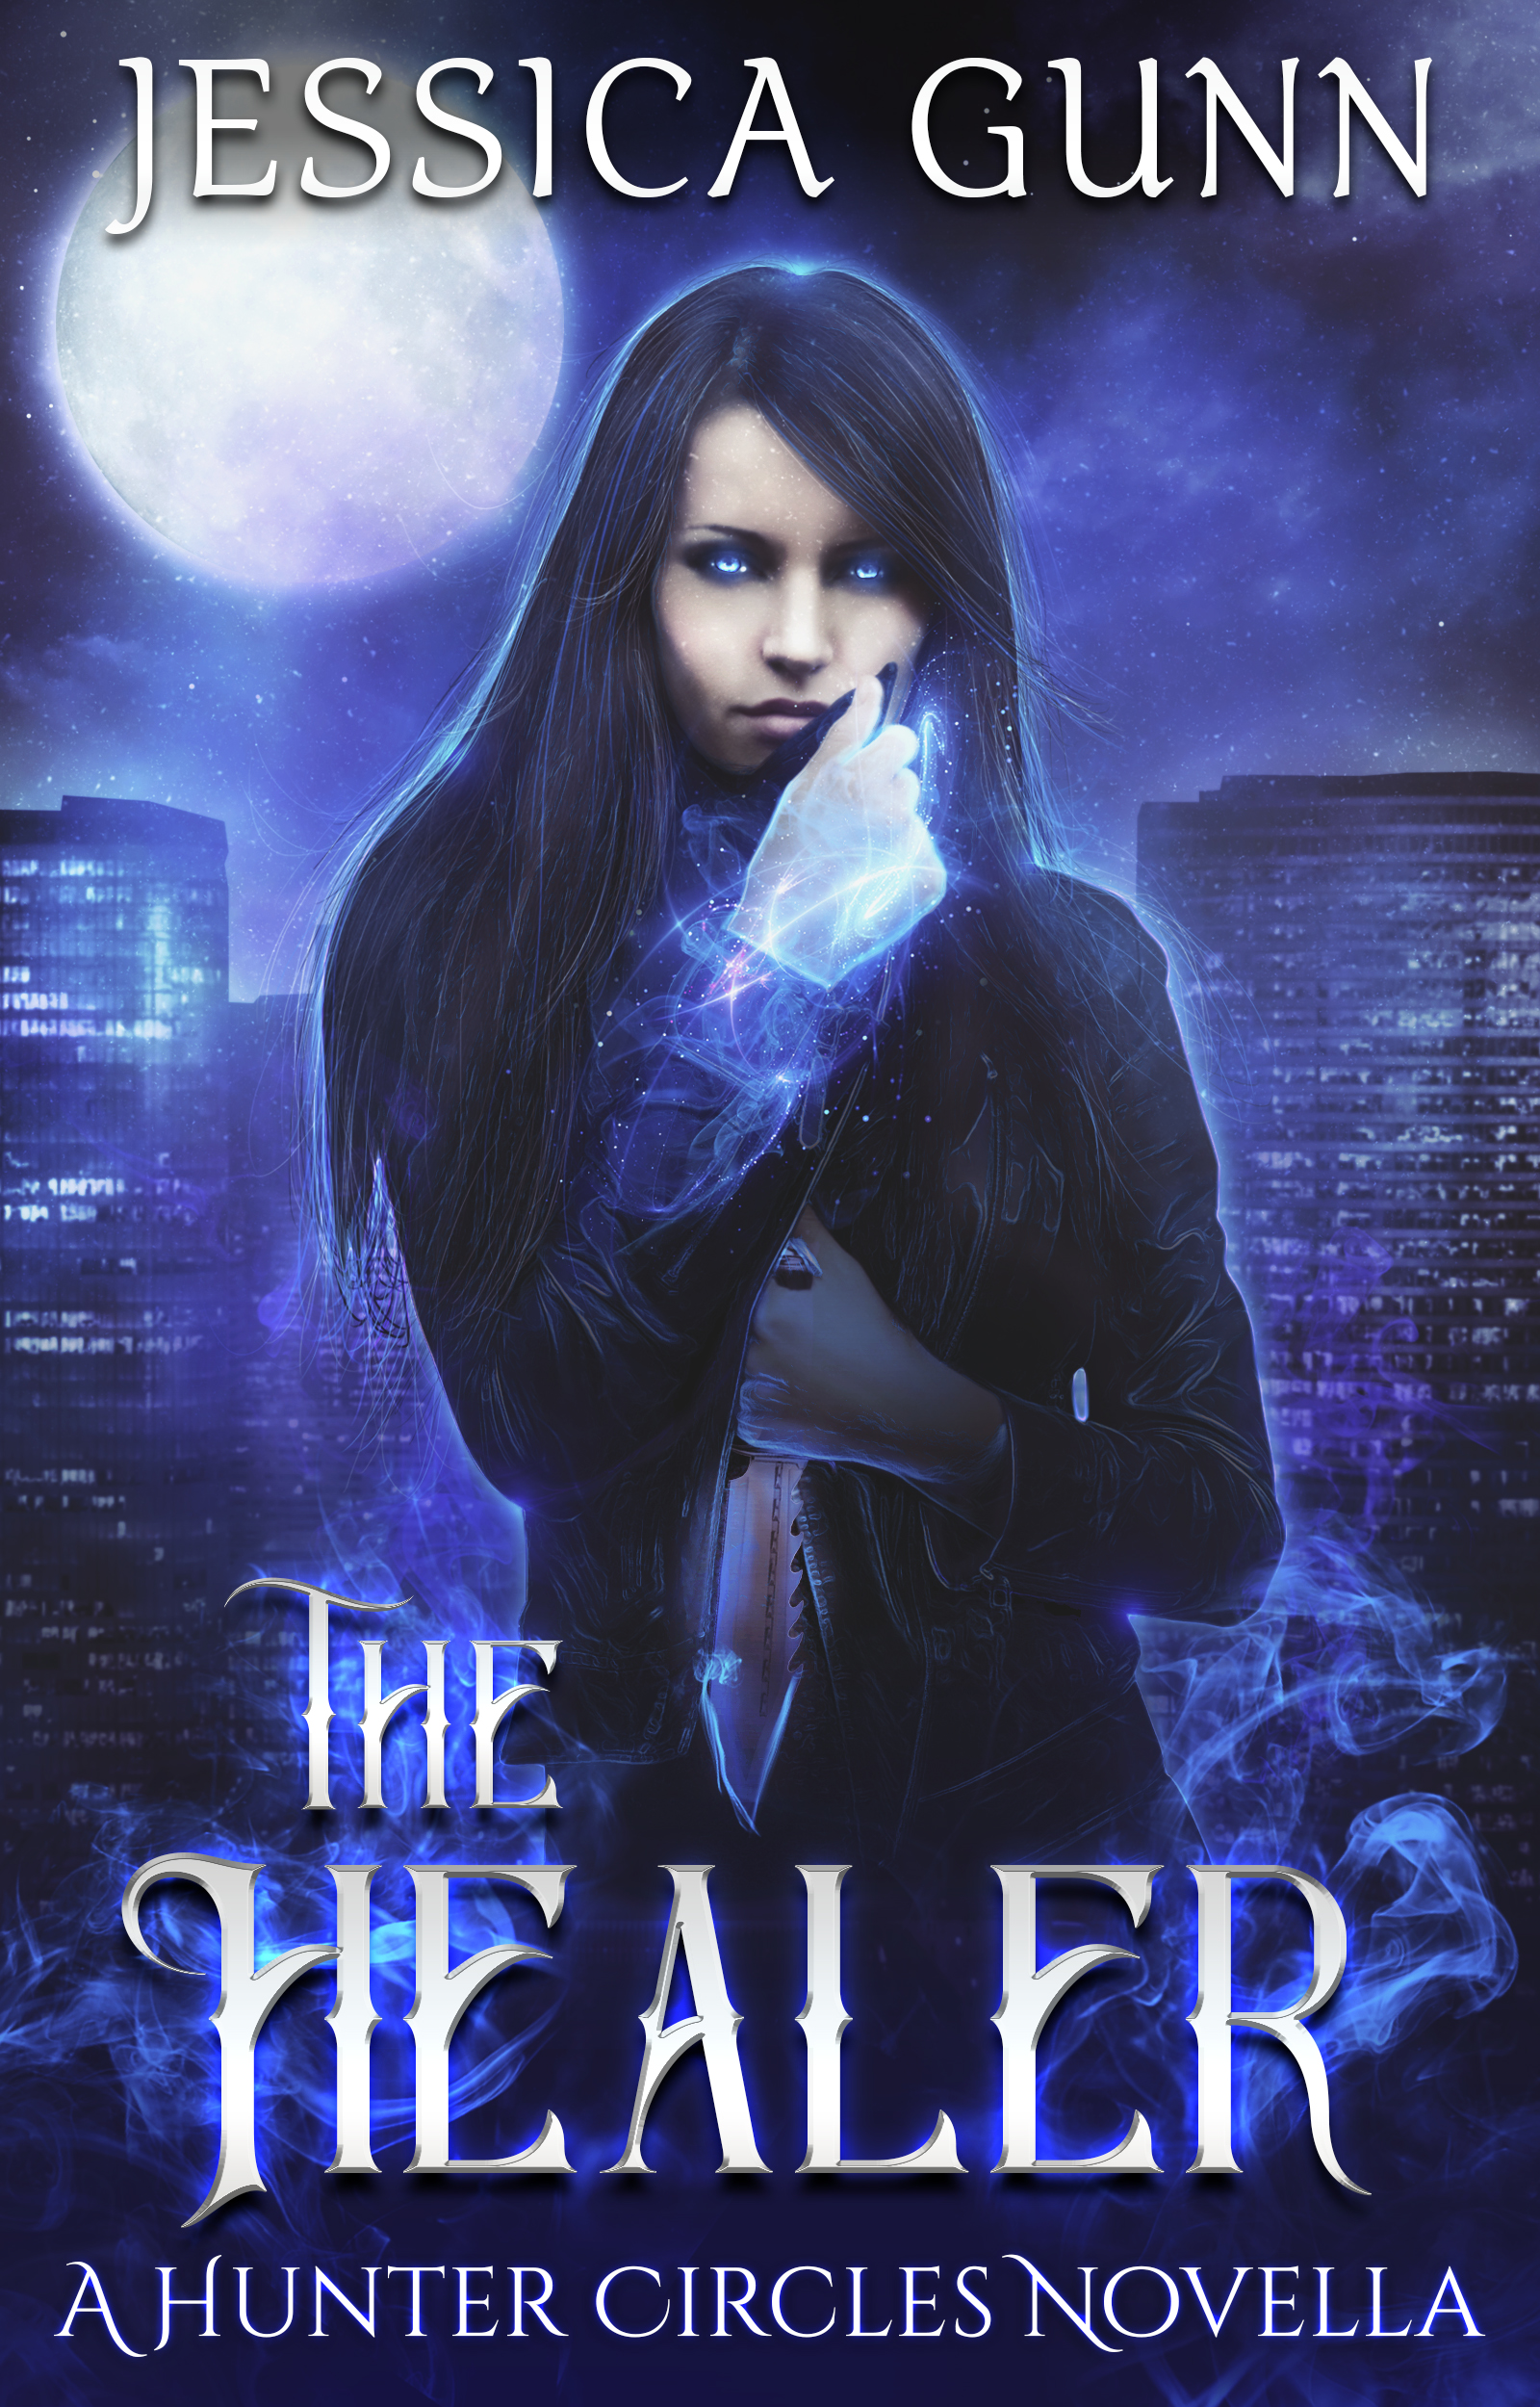 ebook The Healer.jpg